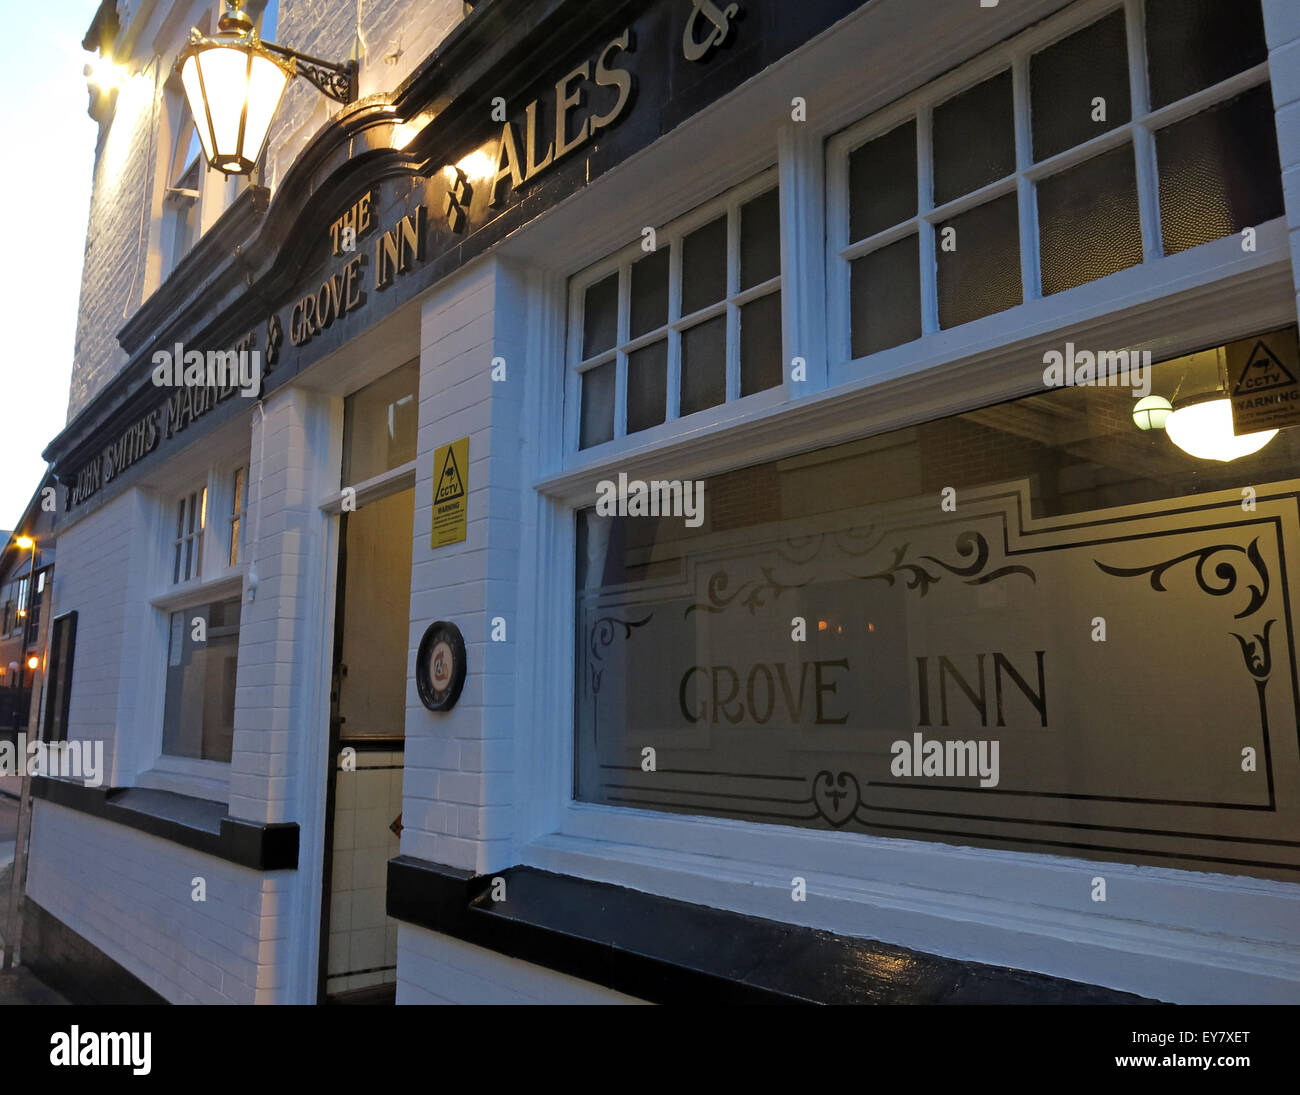 Grove Inn Pub, Back Row, Leeds, West Yorkshire,England,UK at dusk - Stock Image